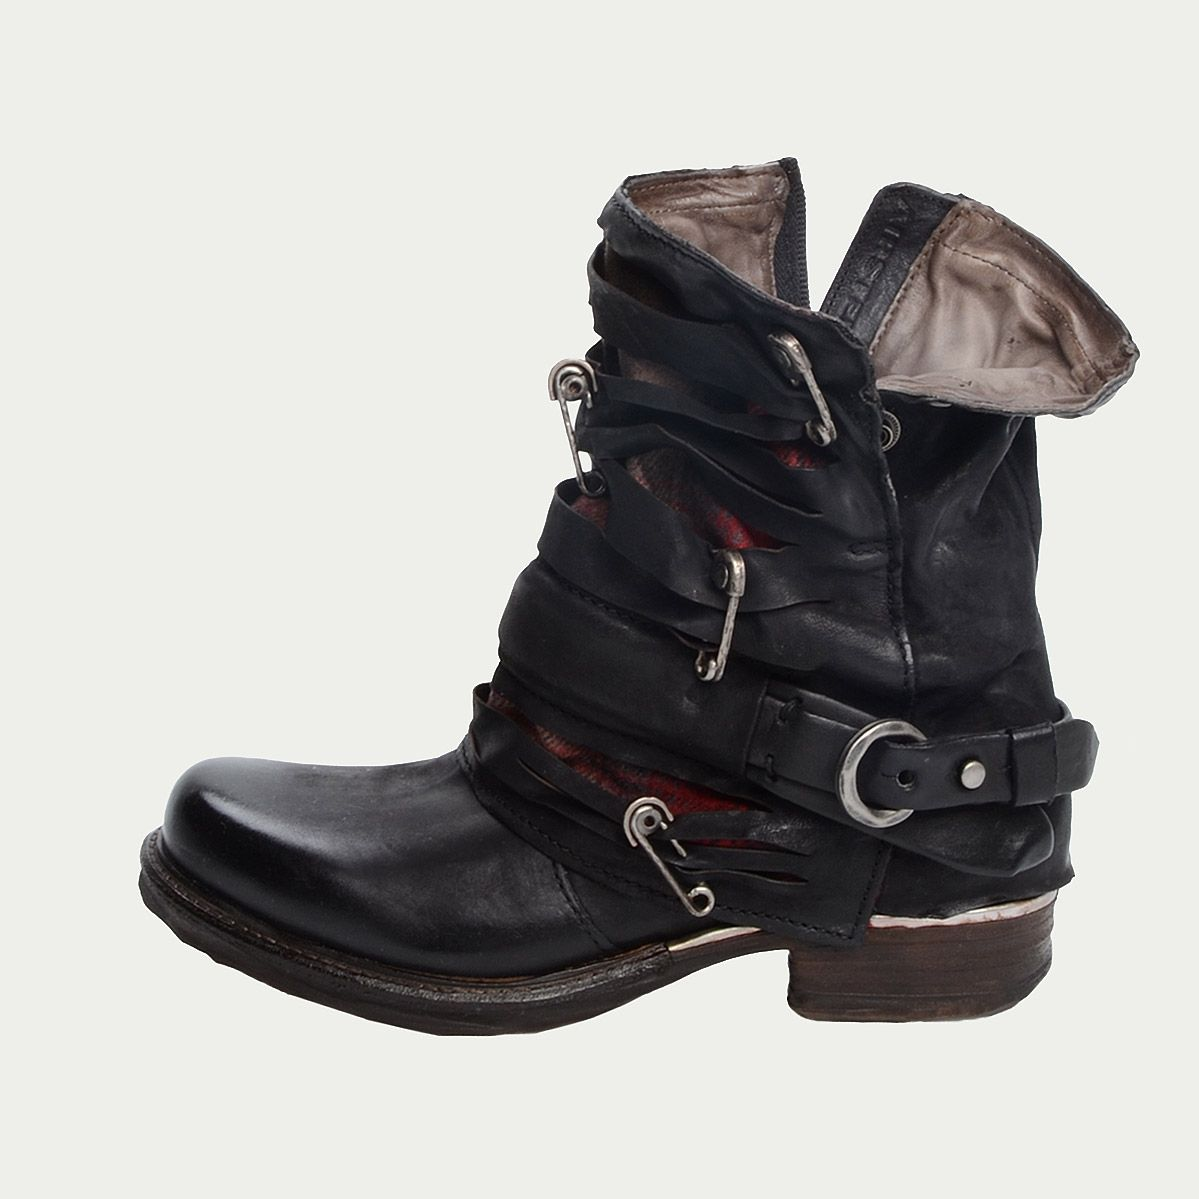 Pin By Pawel On Boots A Passion Boots Bootie Boots Cool Boots